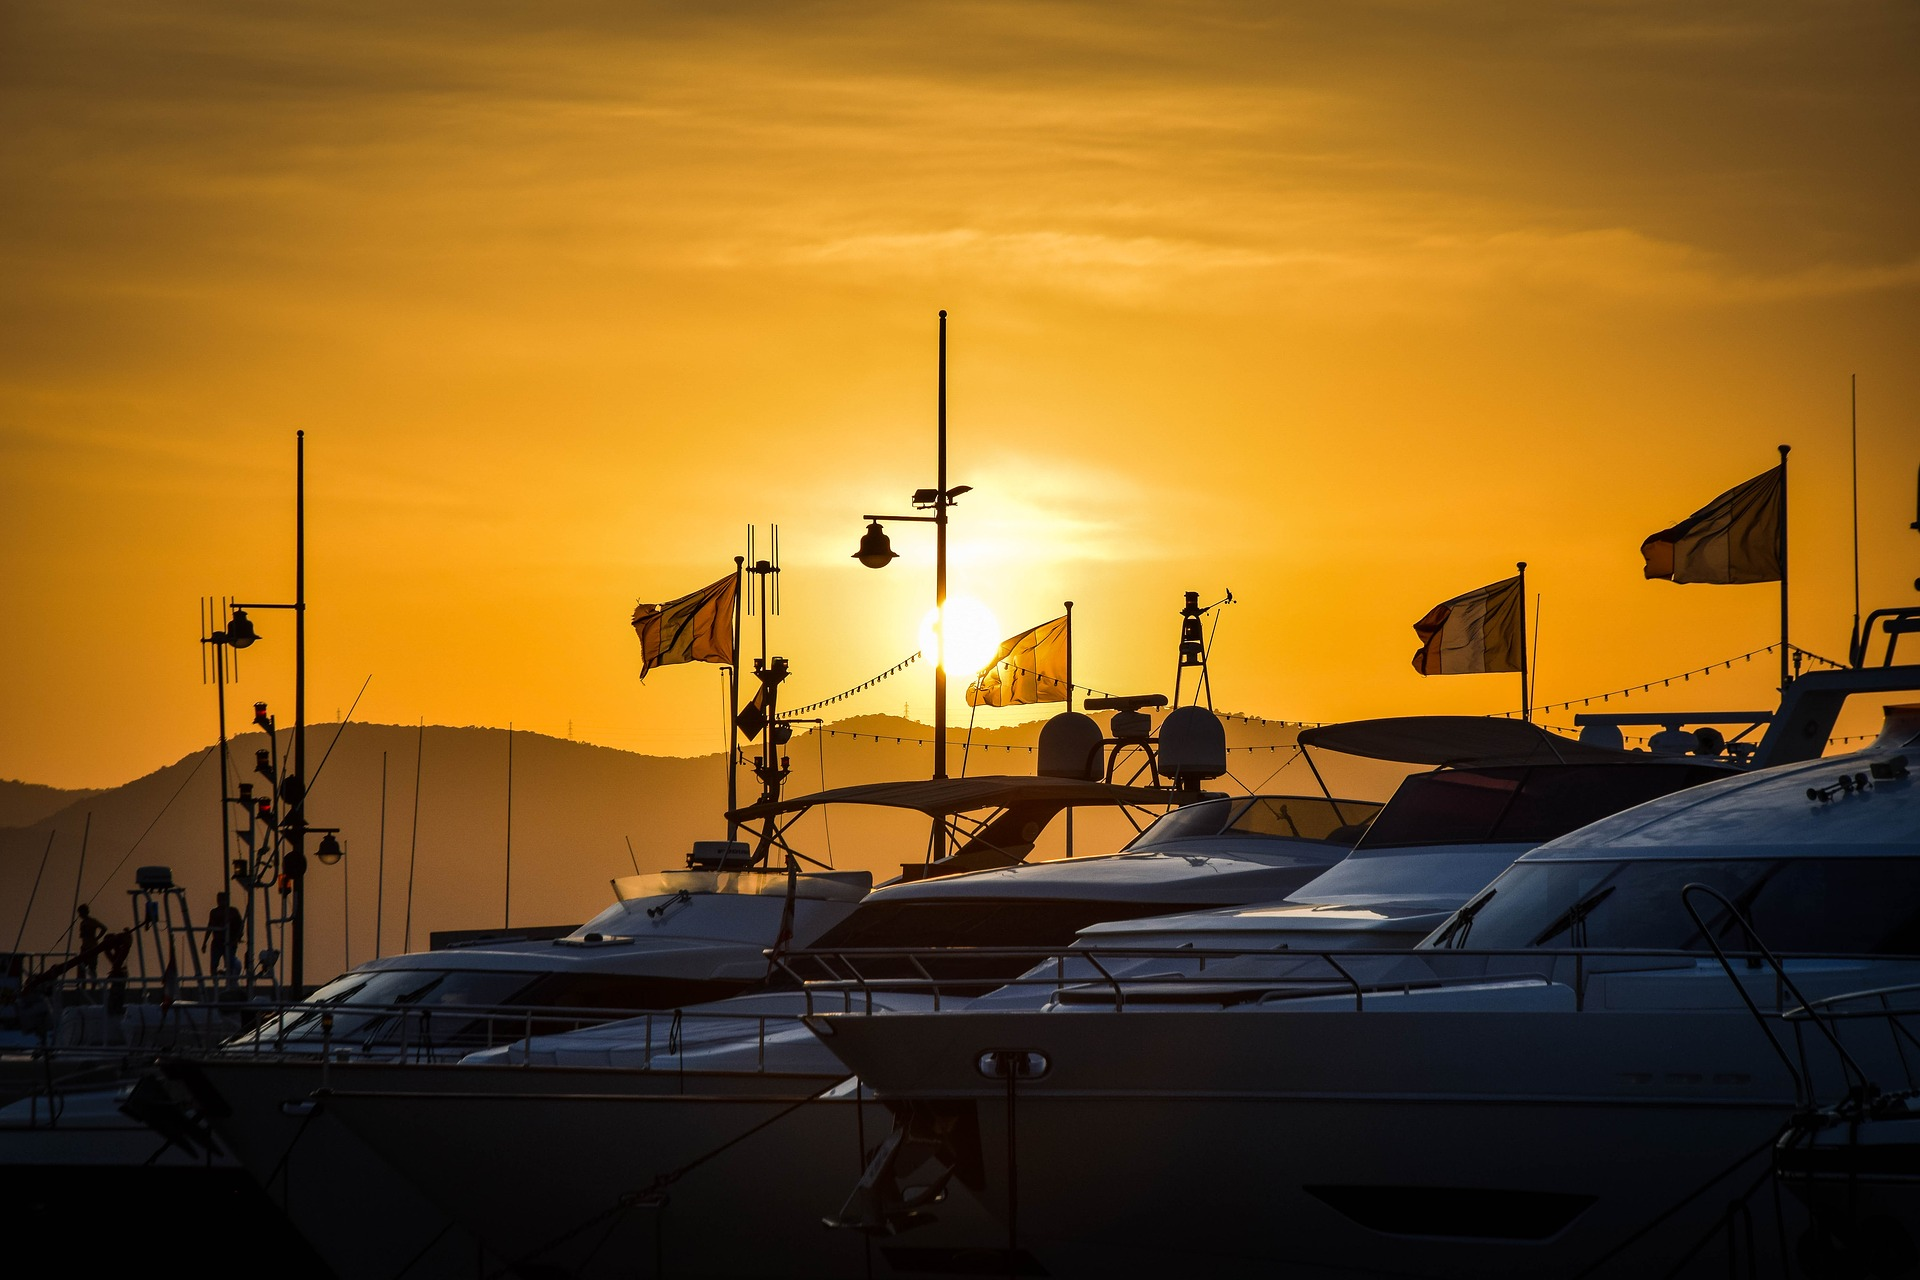 St Tropez Sunset Yachts | FHR Travel Blog